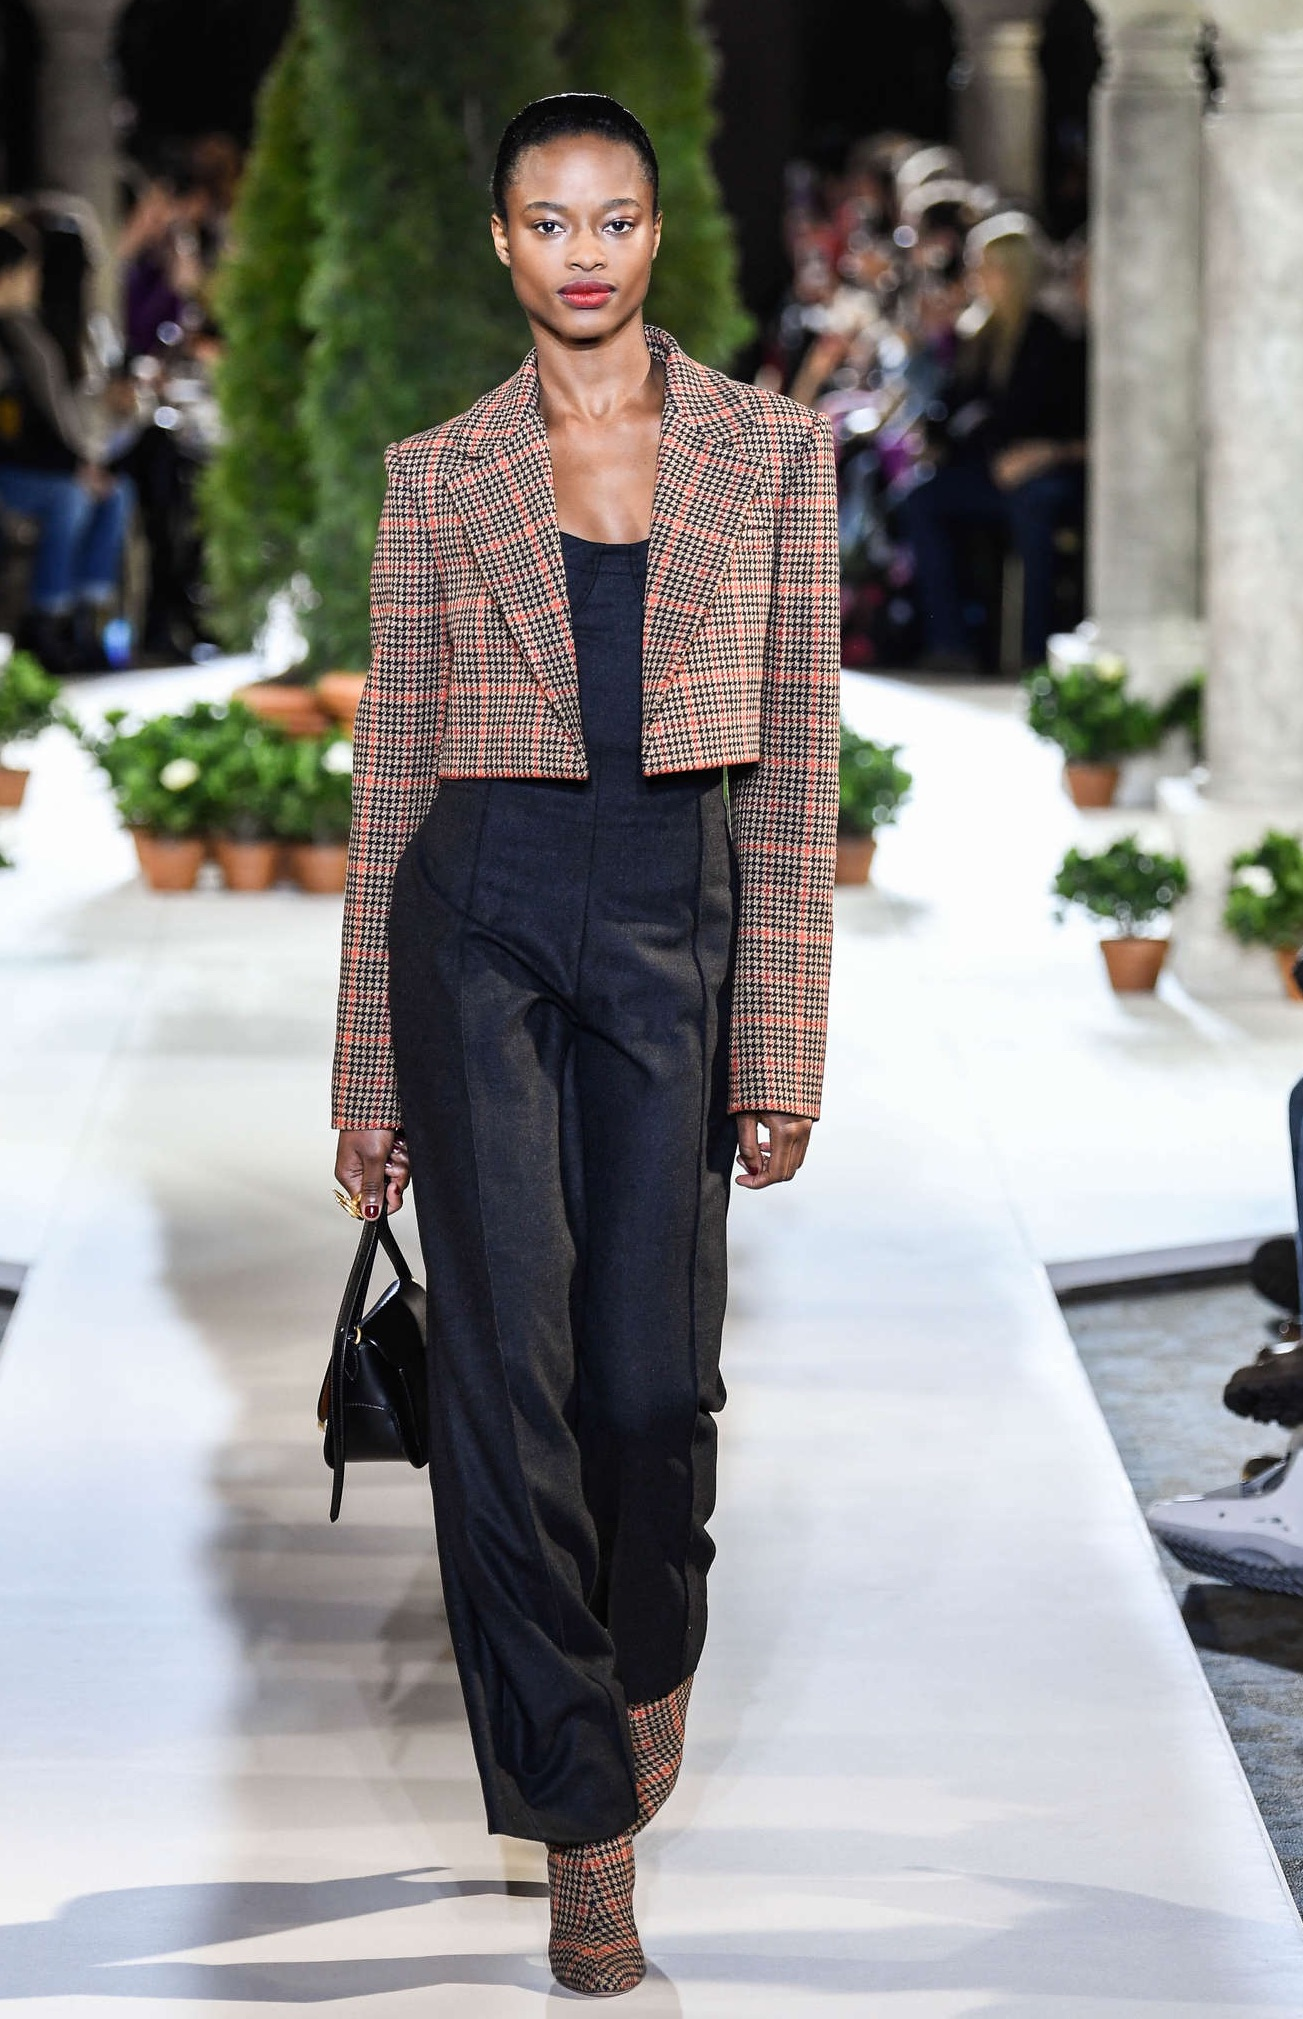 Oscar De La Renta Fall-Winter 2019